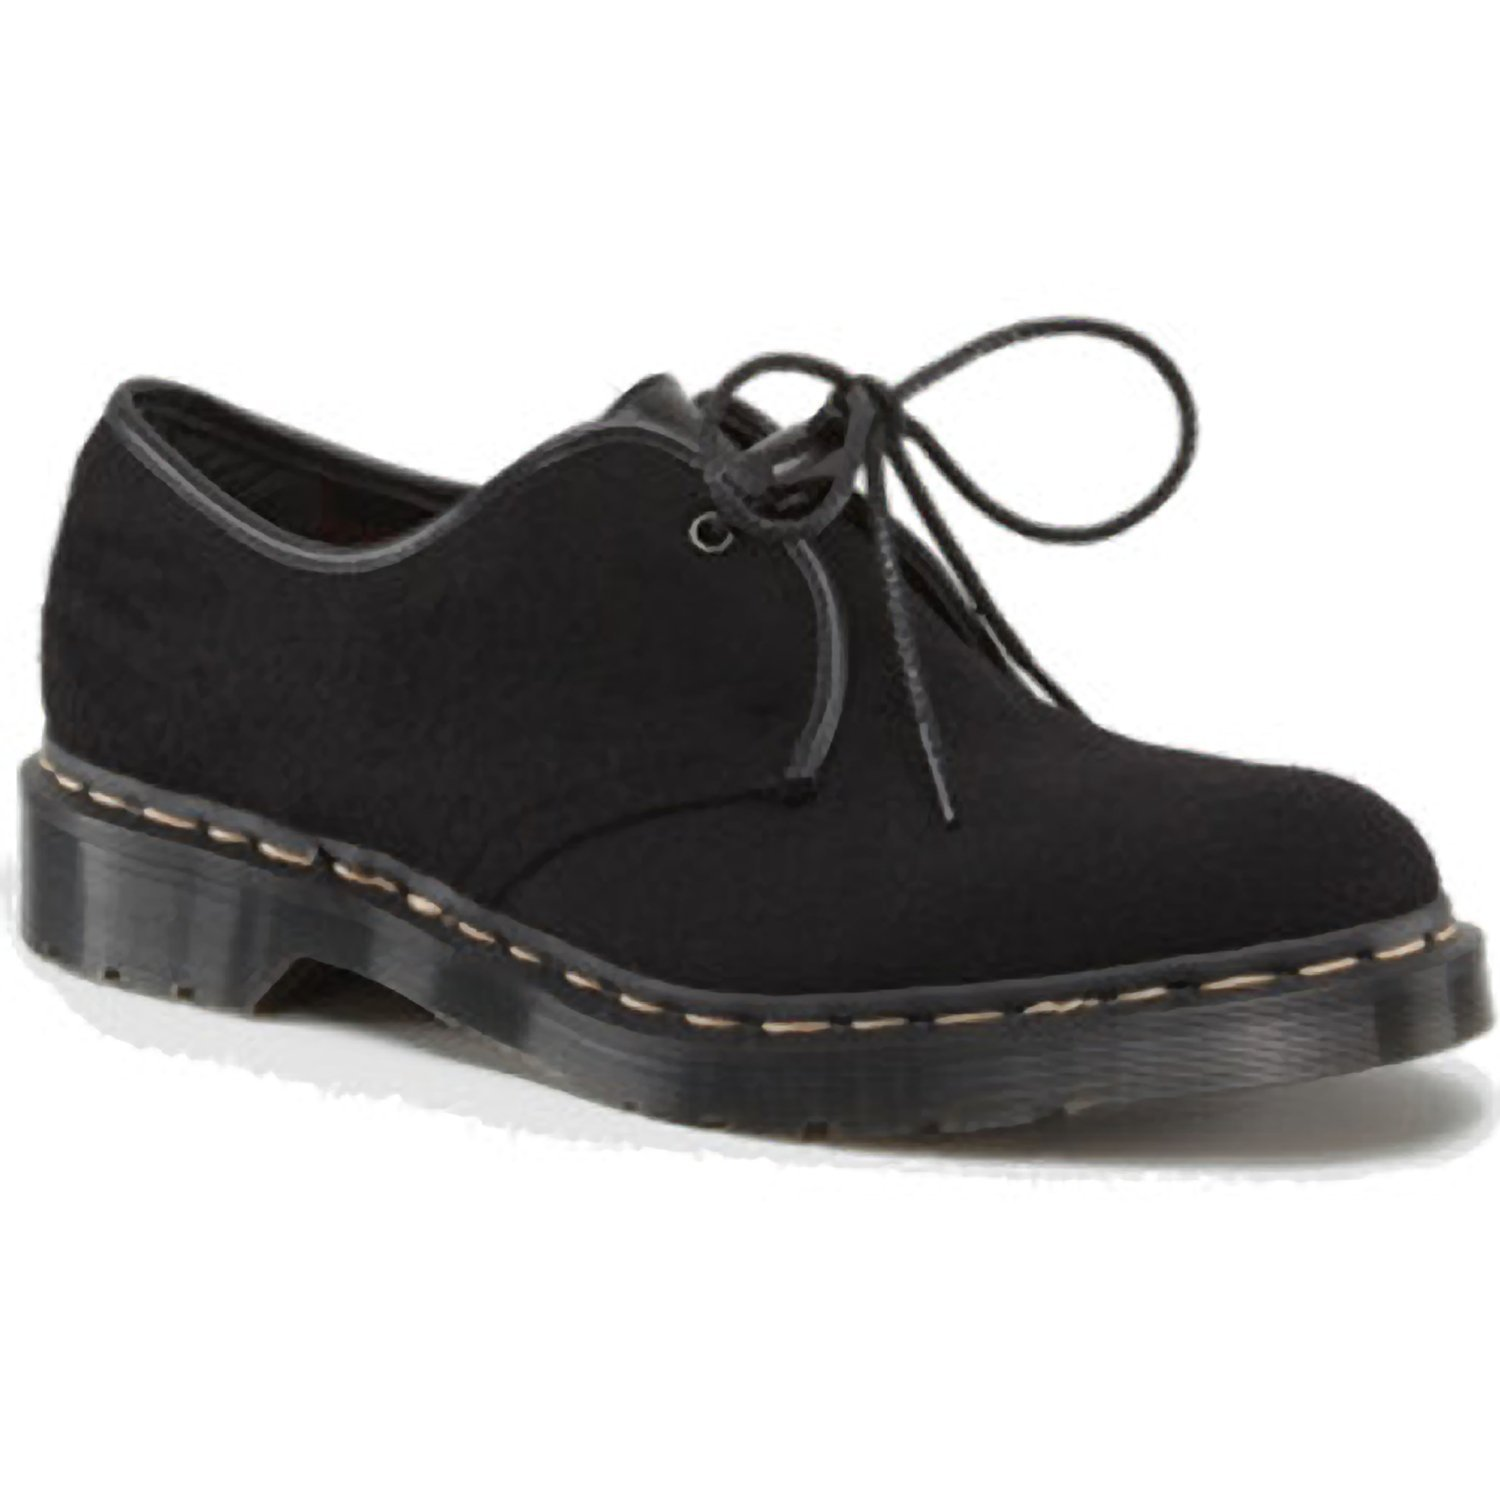 357dace6291 Cheap Doc Martens 1461 Black Smooth, find Doc Martens 1461 Black ...